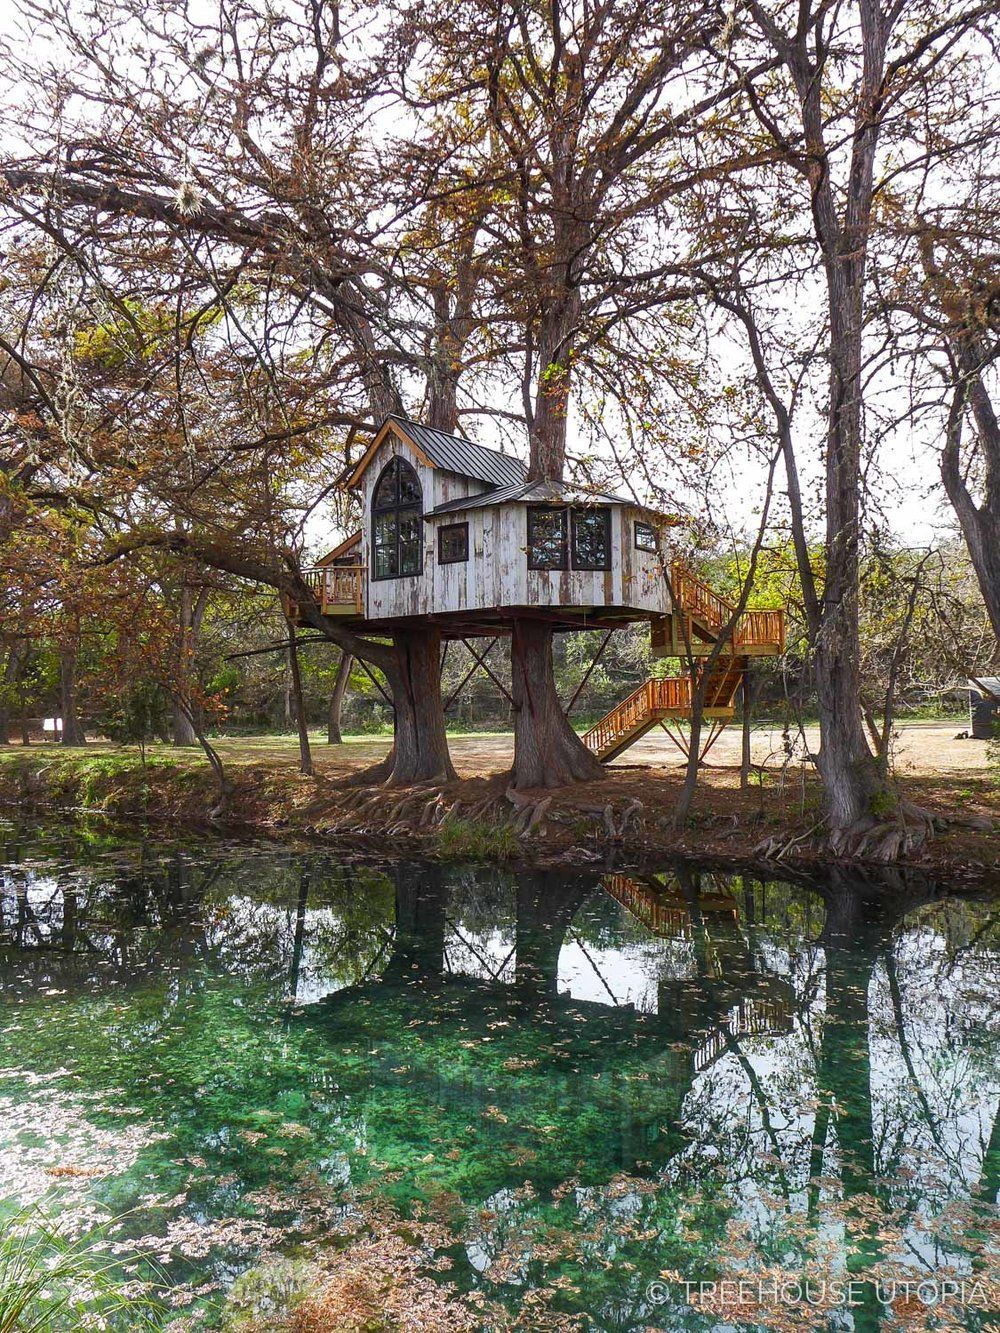 Chapelle at Treehouse Utopia, a Texas Hill Country Retreat